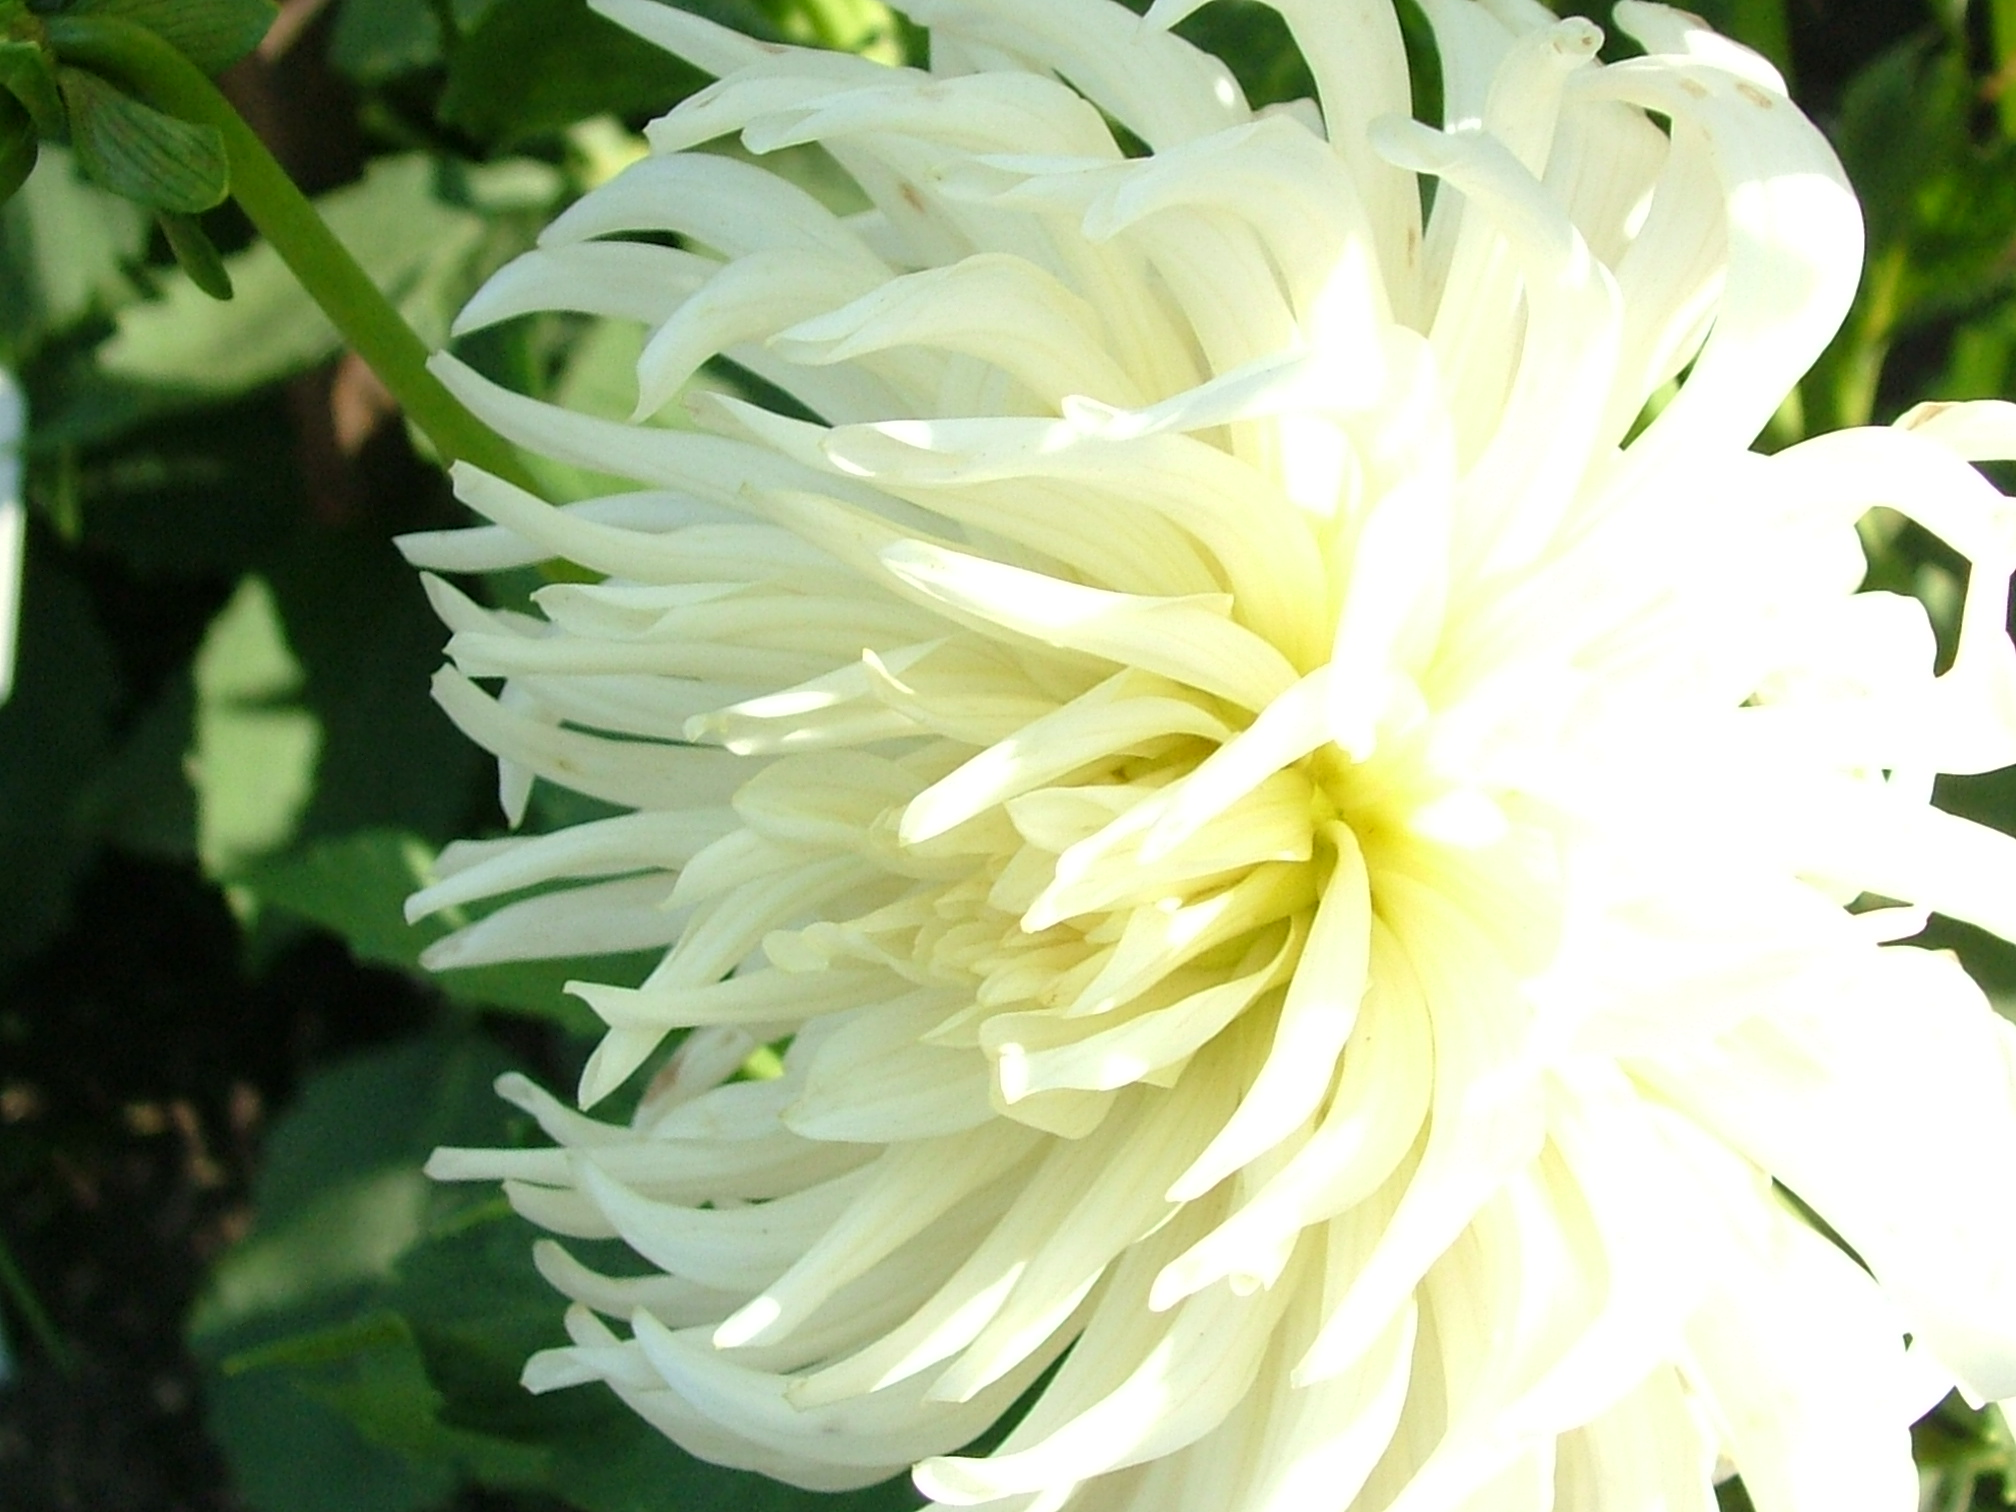 White flowers types 3 wide wallpaper hdflowerwallpaper white flowers types free wallpaper mightylinksfo